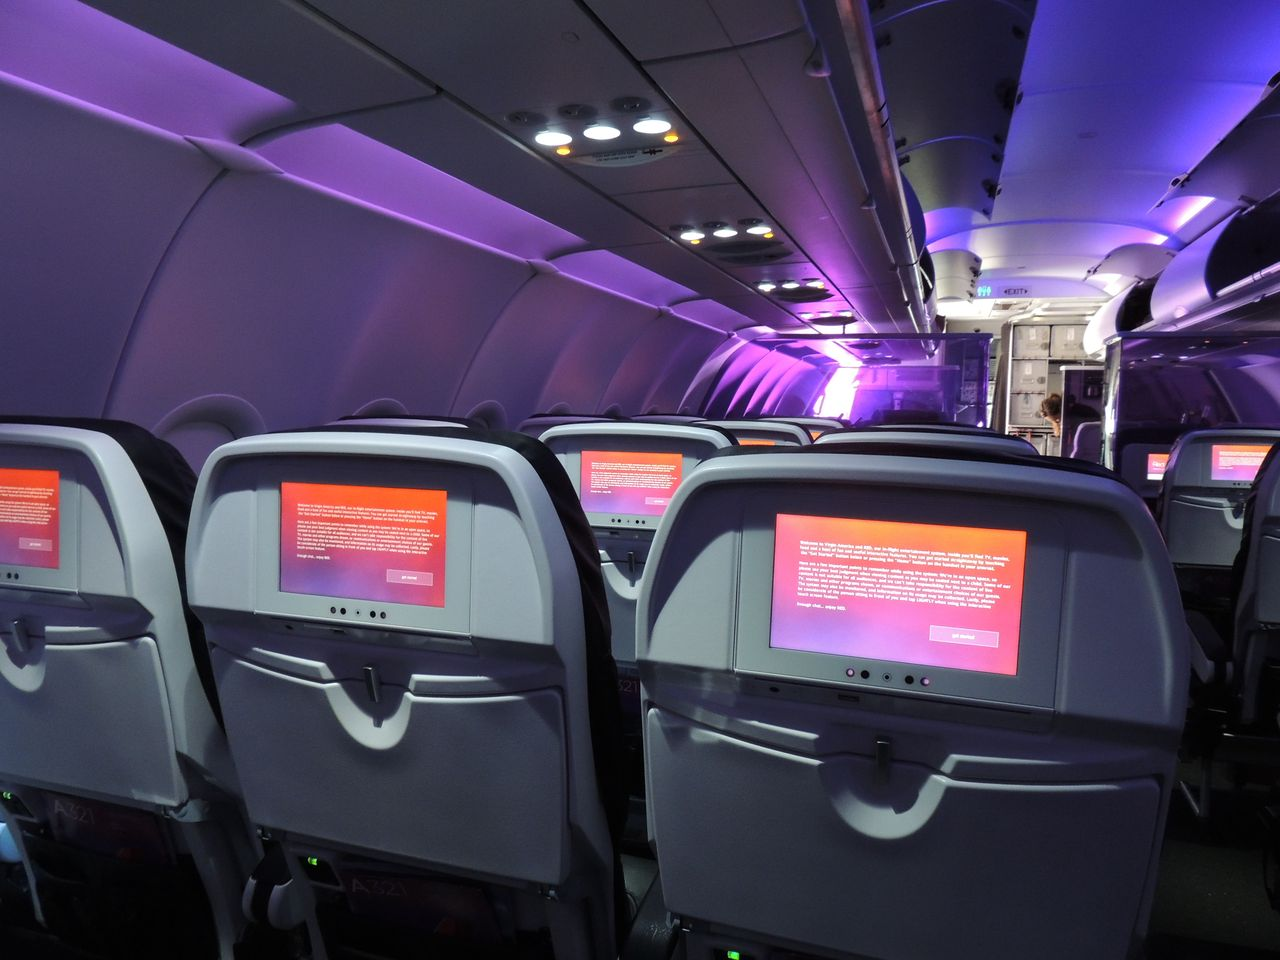 Review Of Alaska Airlines Flight From Los Angeles To New